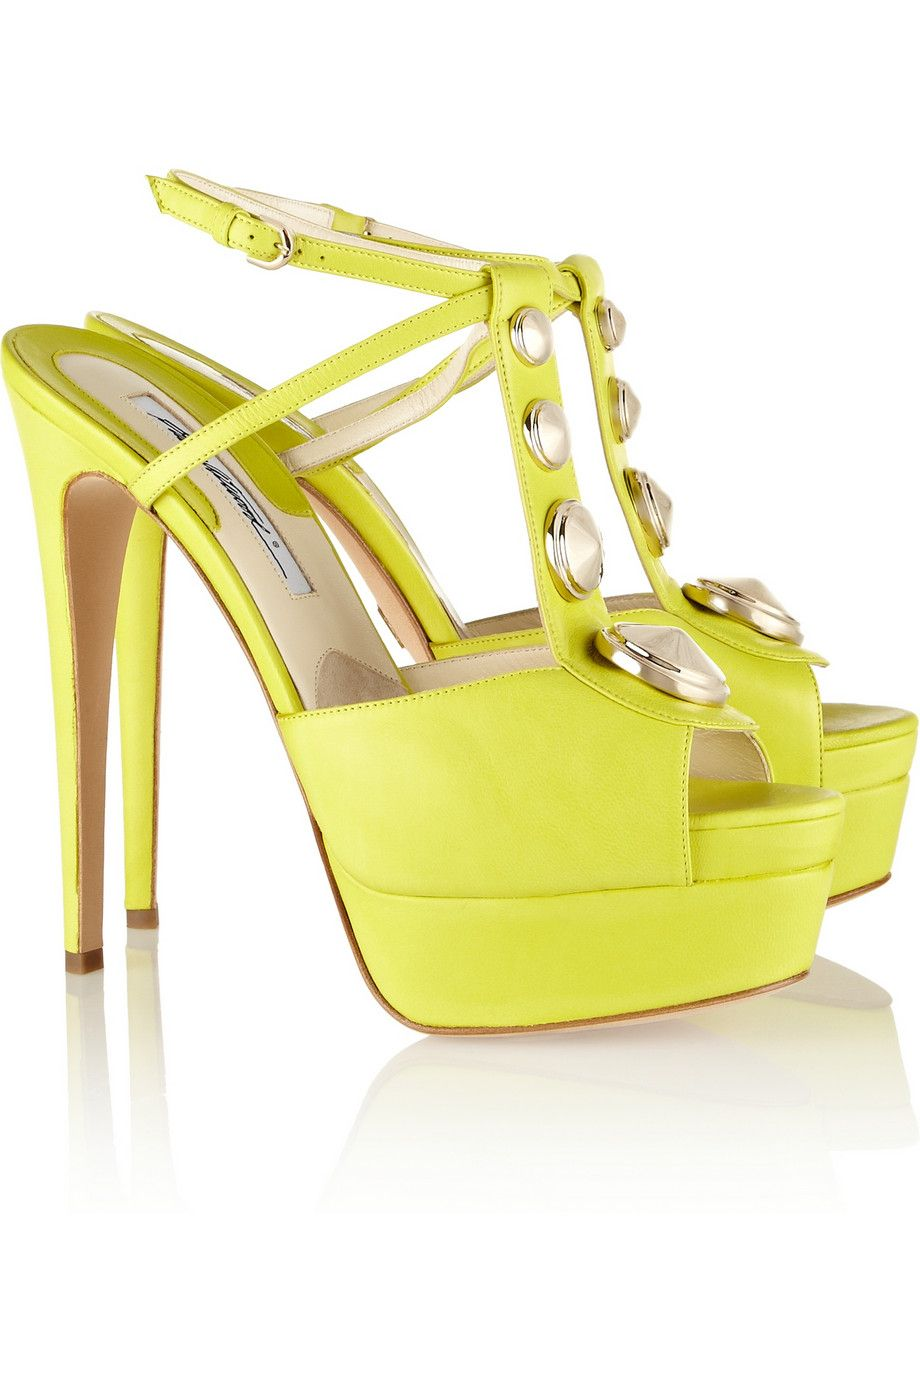 49251d12179 Brian Atwood Cliza Studded Suede and Leather Sandals in Yellow (Chartreuse)